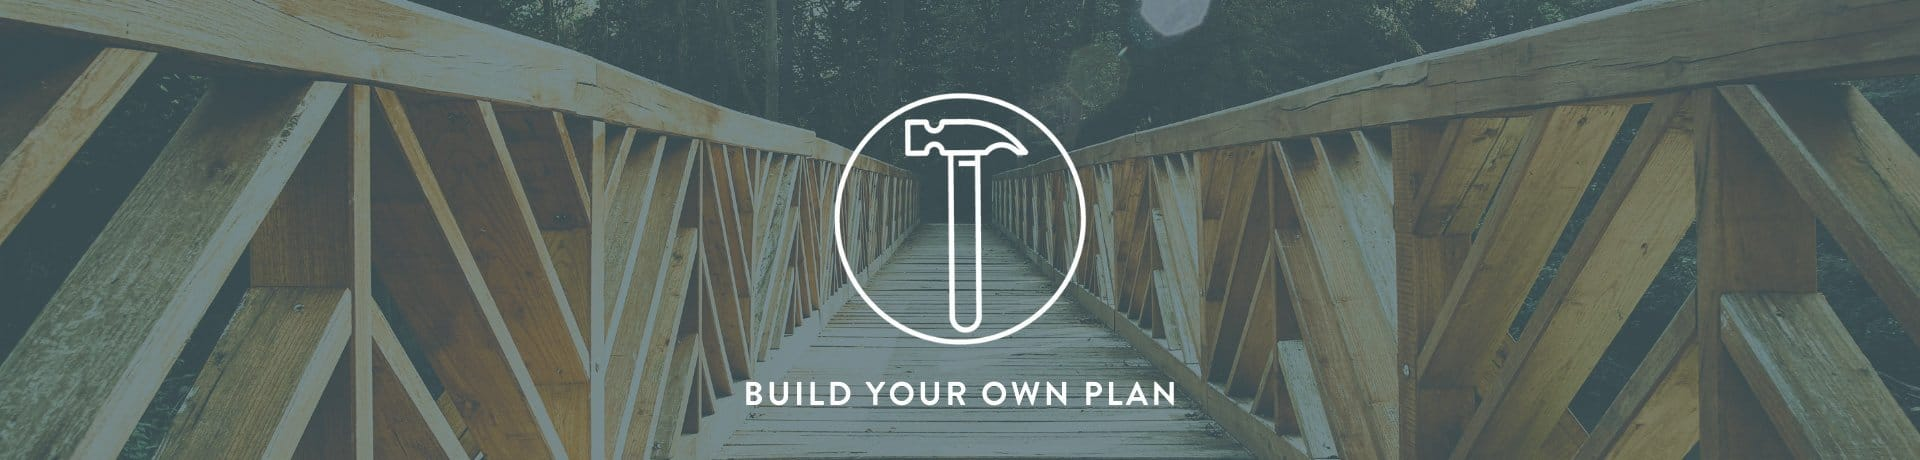 build your plan bridge